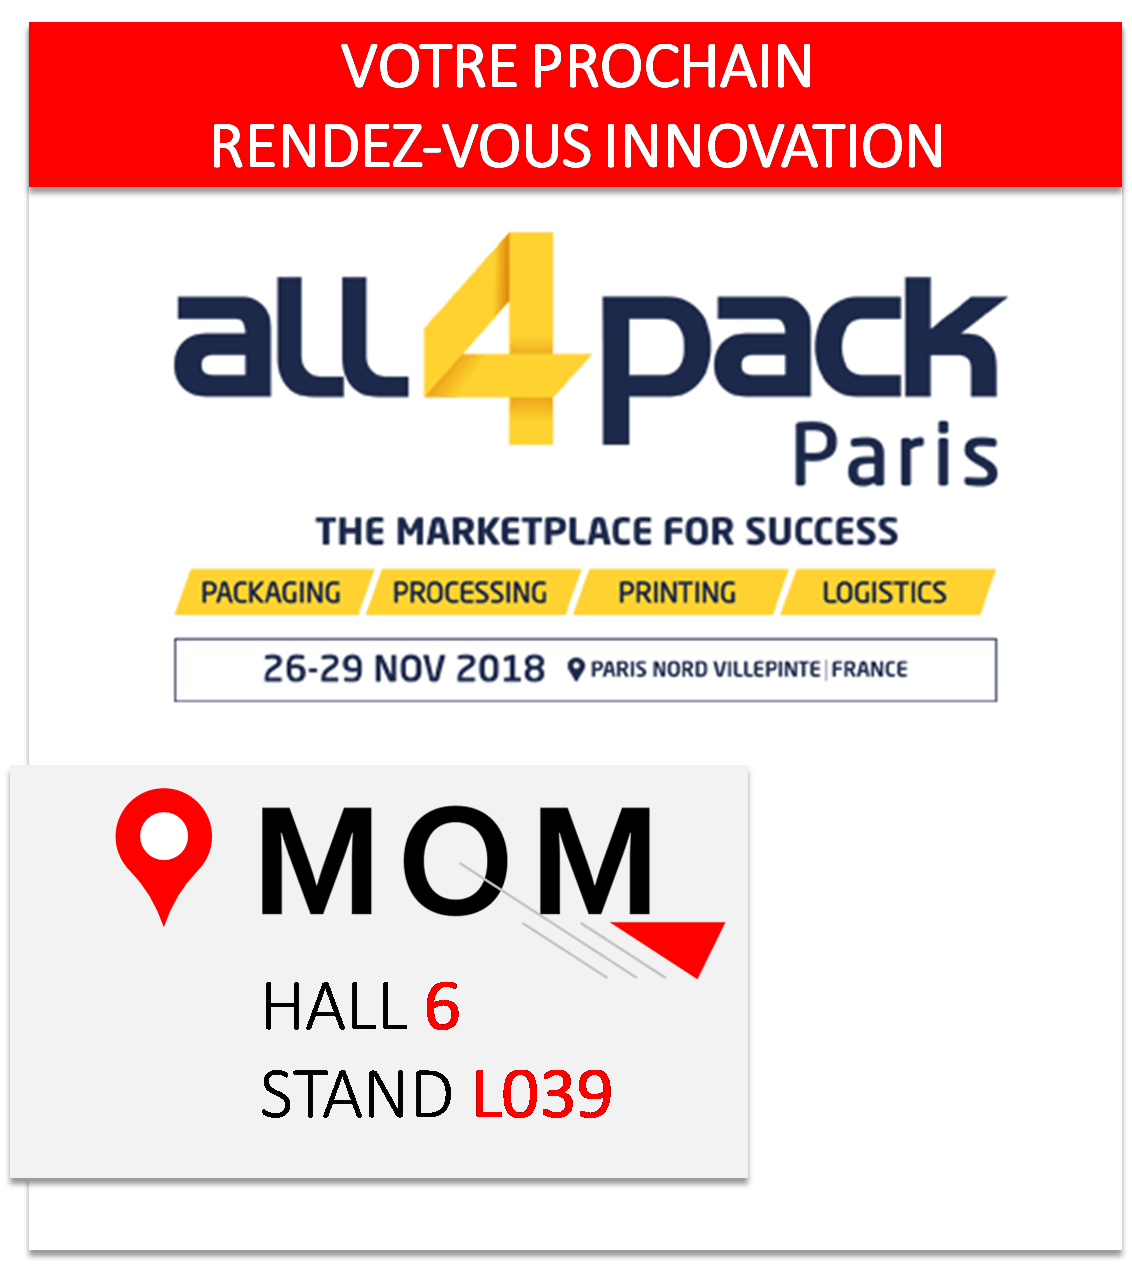 Foire De Paris 2017 Invitation Gratuite Invitation All4pack Paris 2018 Commandez La Gratuitement Mom